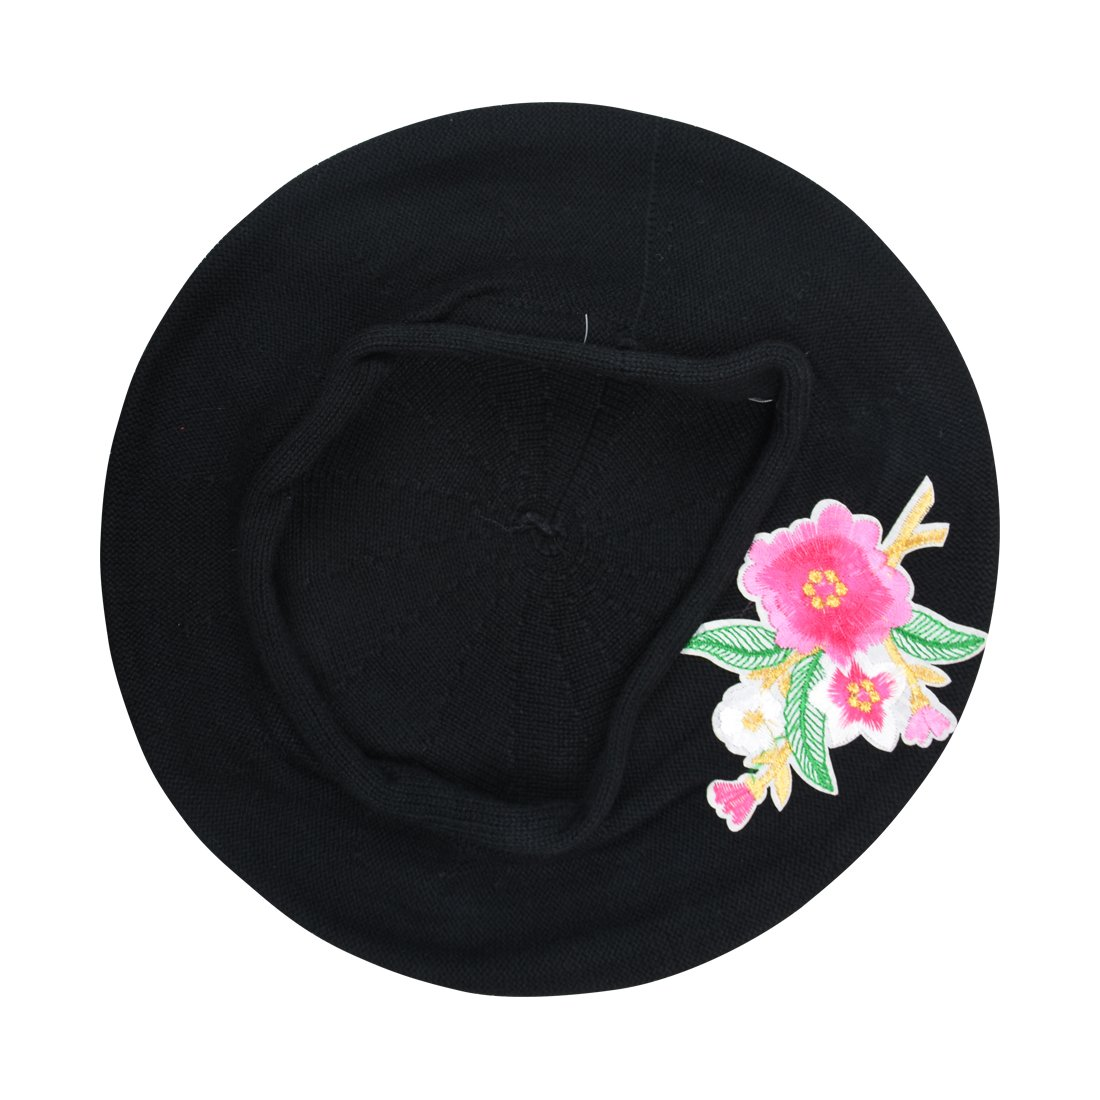 Landana Headscarves Black 100% Cotton Beret French Ladies Hat with Pink Flower Bouquet by Landana Headscarves